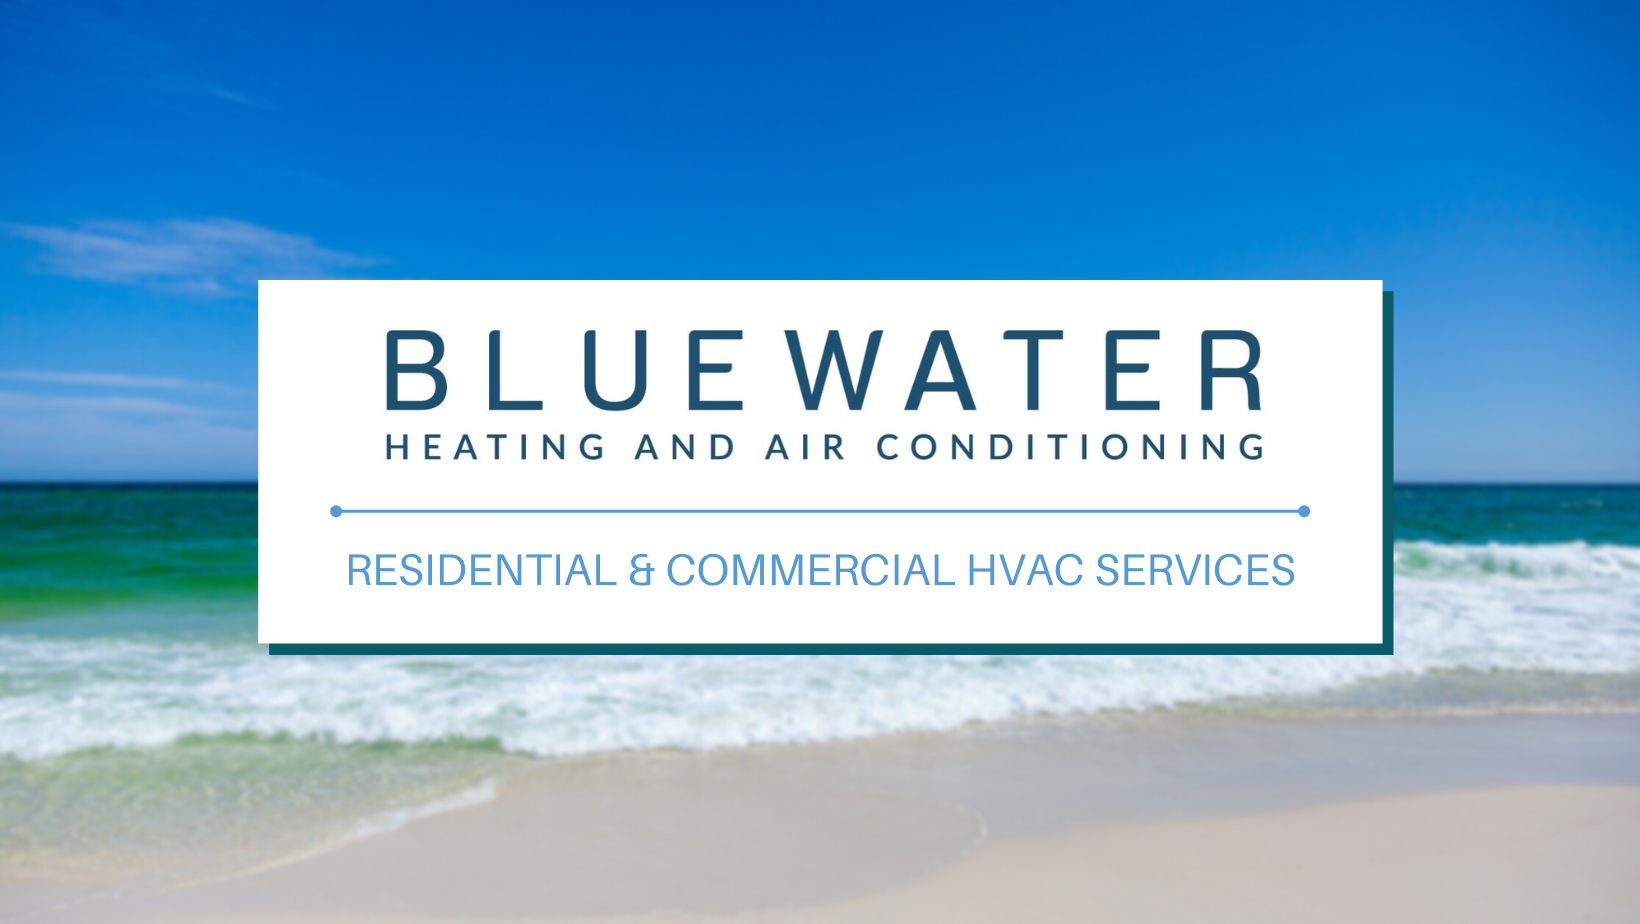 Bluewater Heating & Air Conditioning